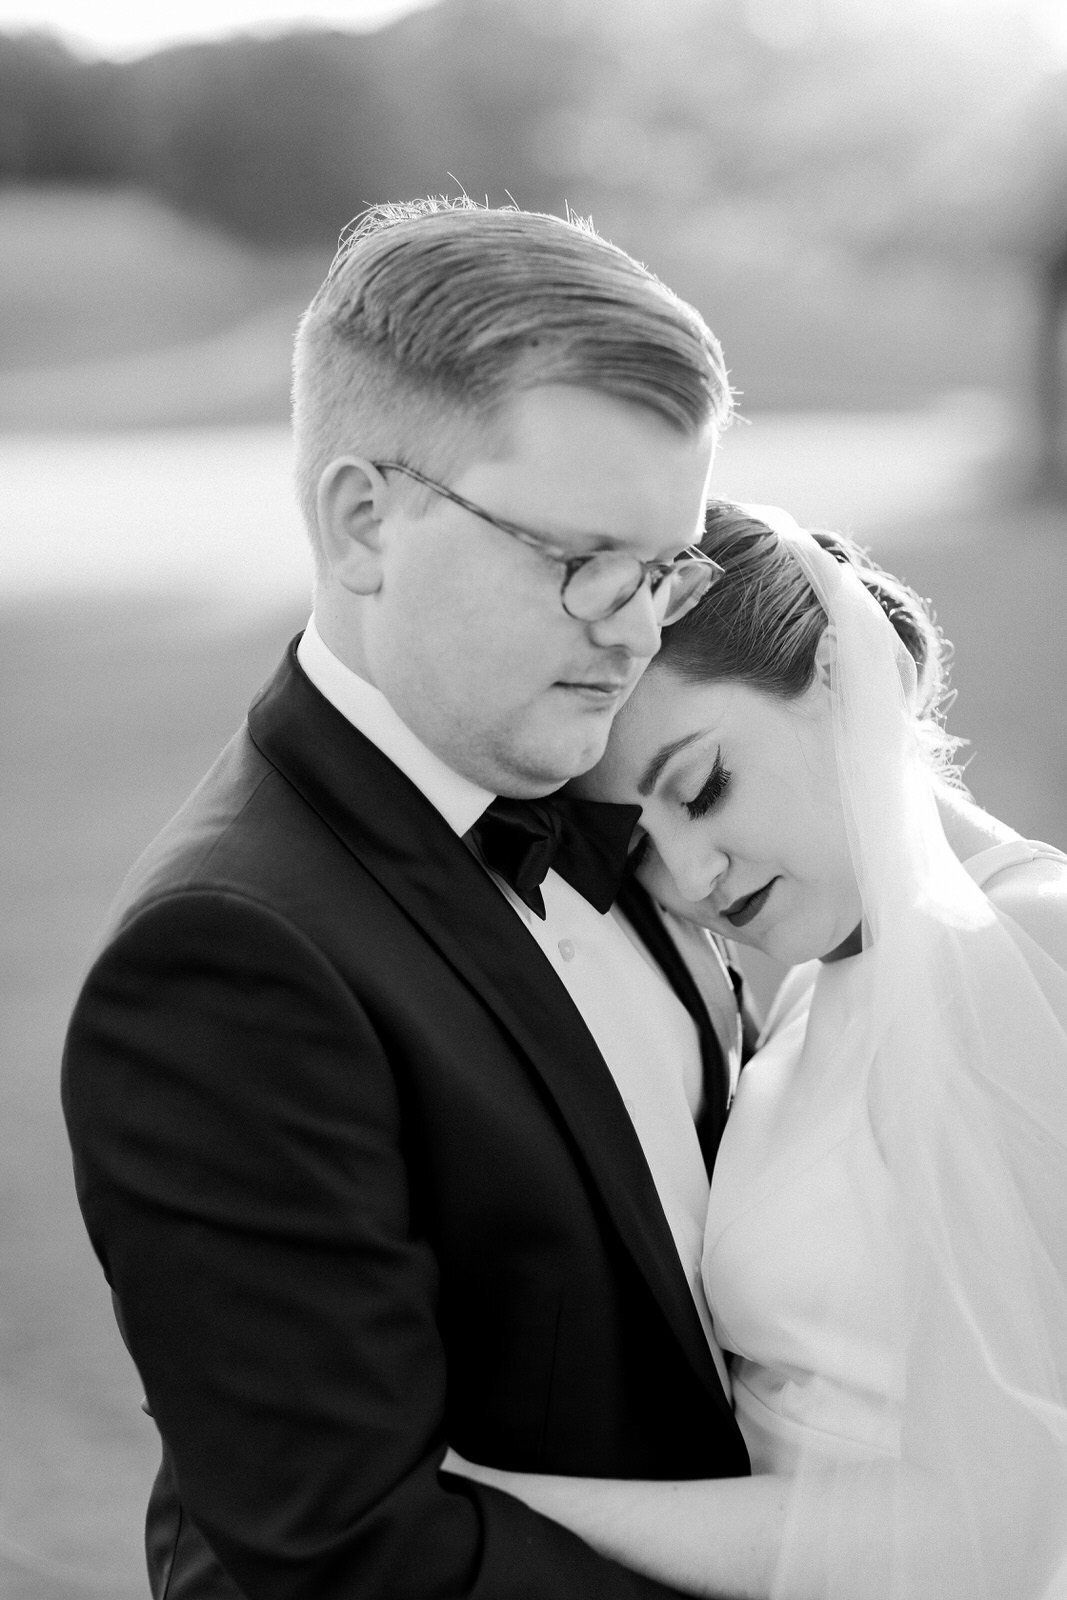 Fine art North Carolina wedding photographer captures a couple during their wedding day portraits during their modern Forsyth Country Club wedding.